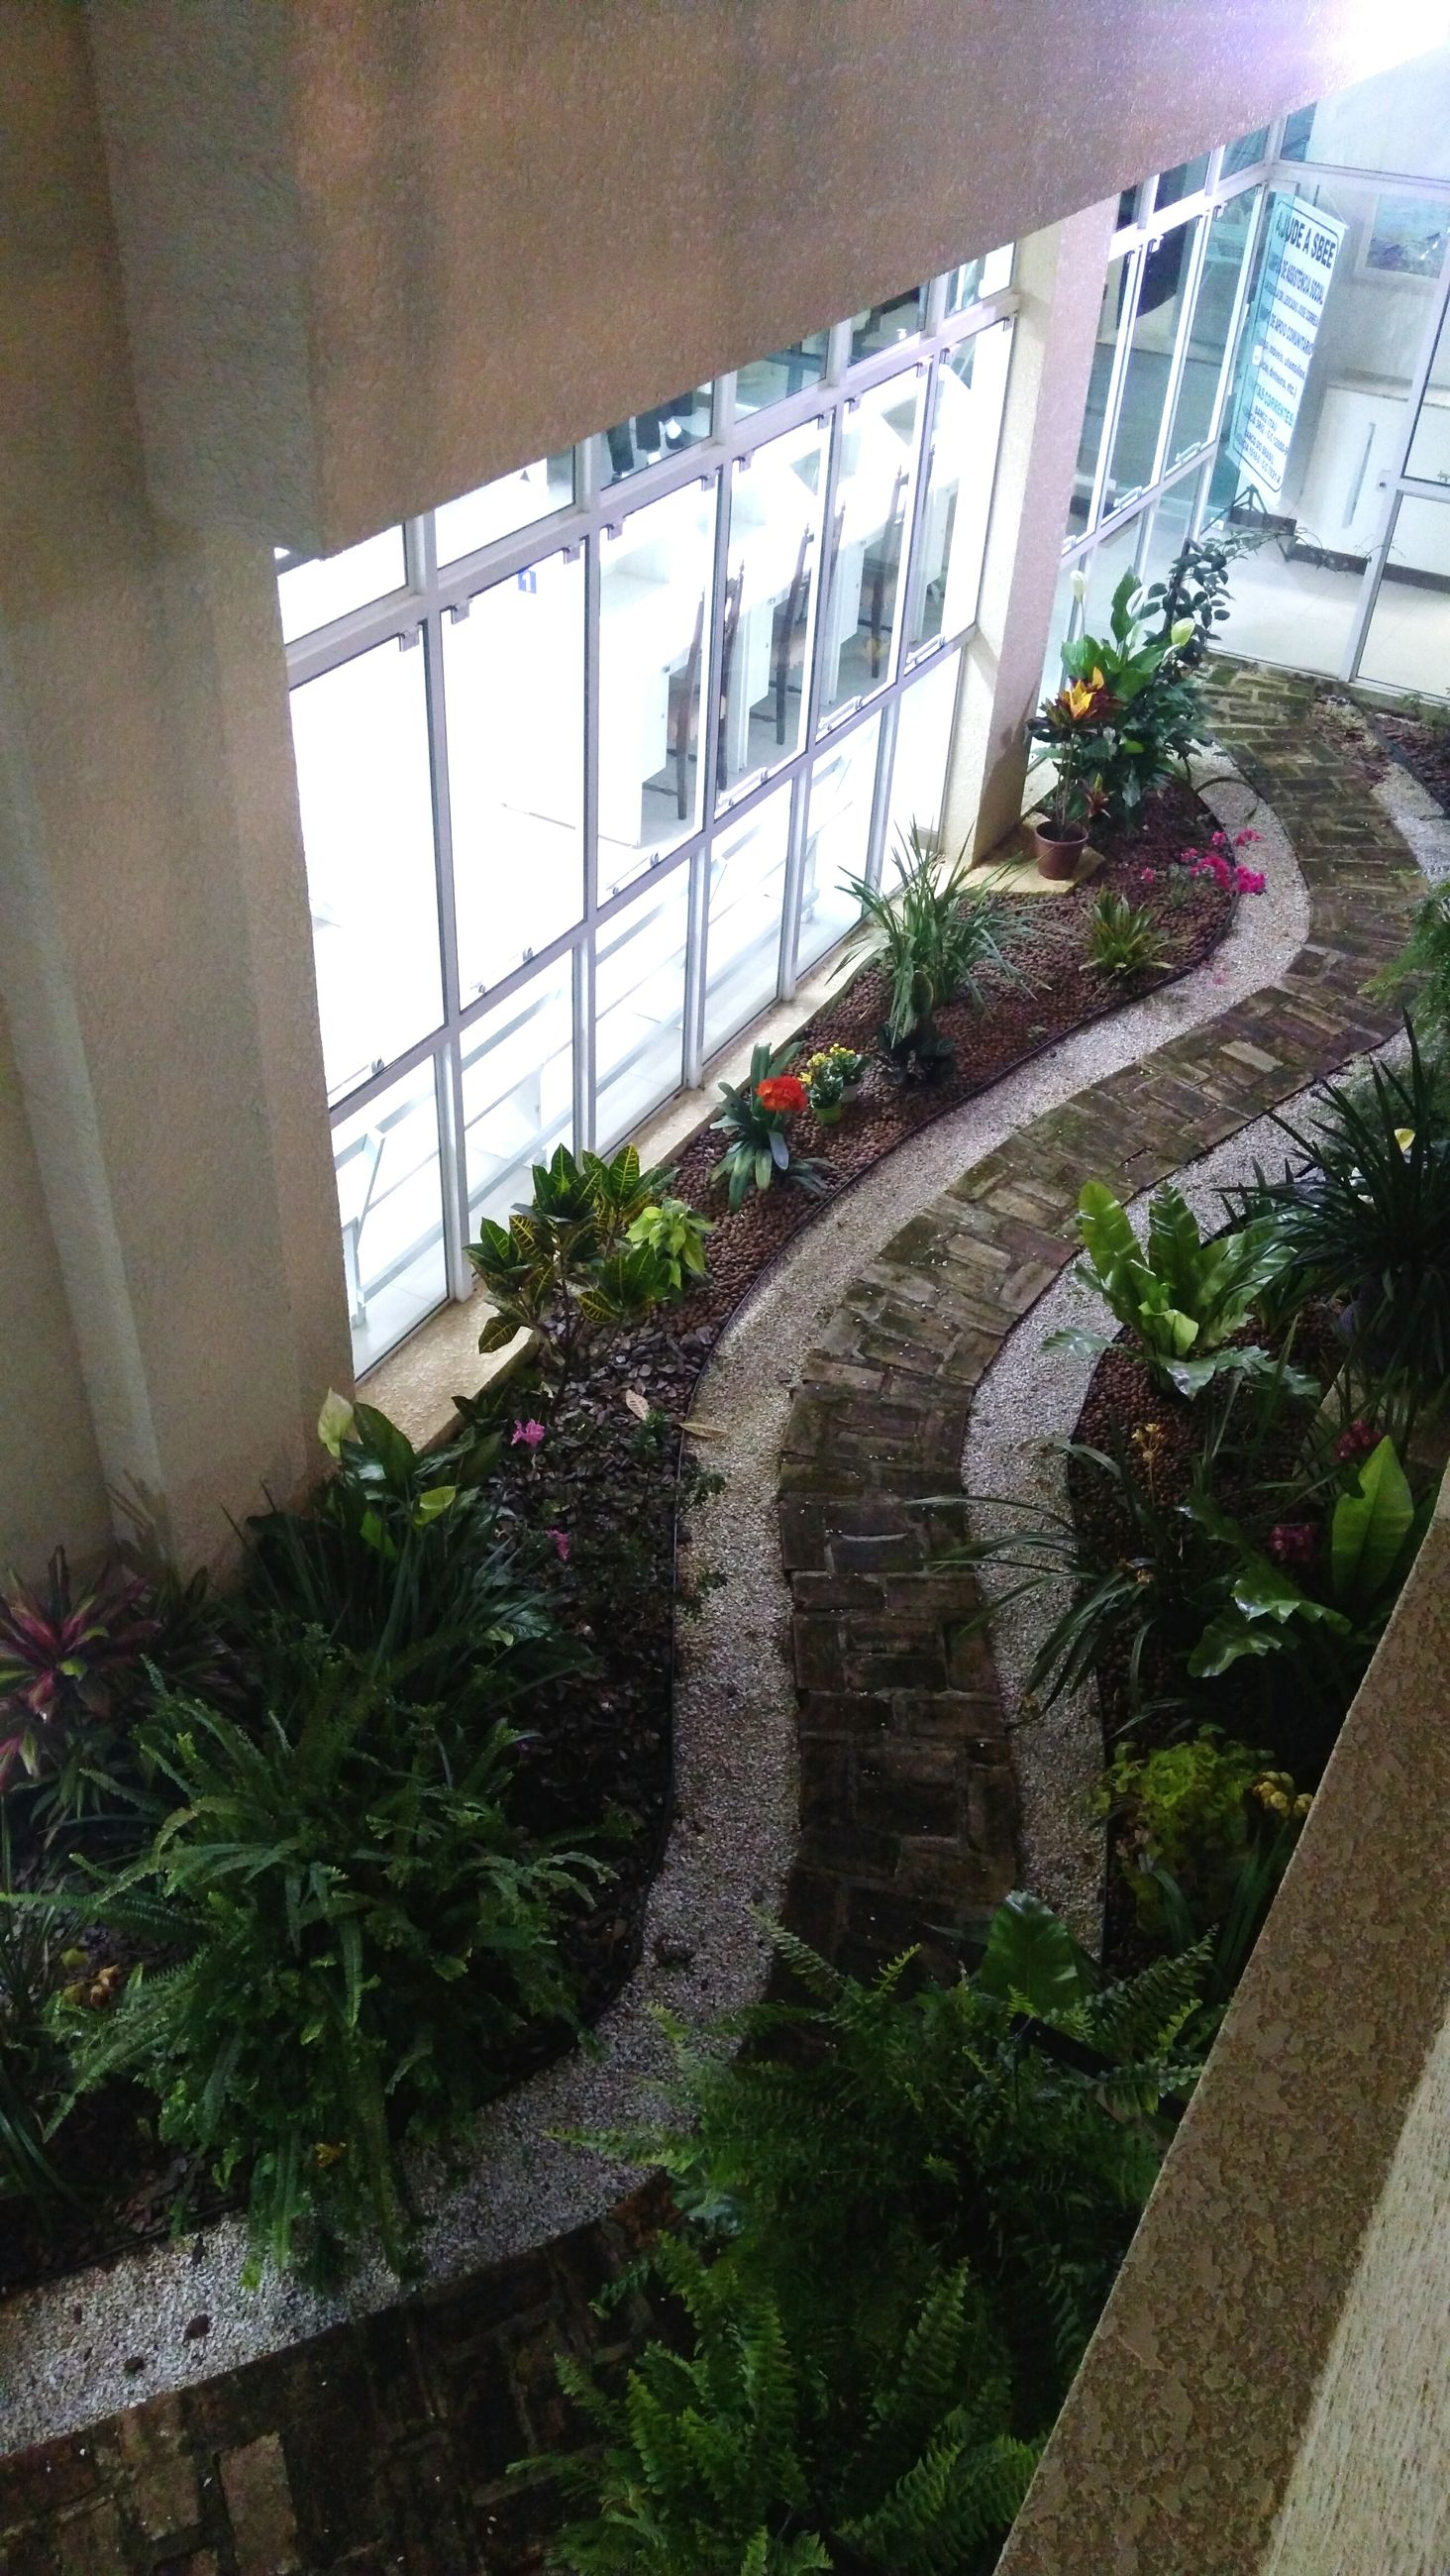 architecture, built structure, building exterior, plant, no people, growth, day, outdoors, nature, greenhouse